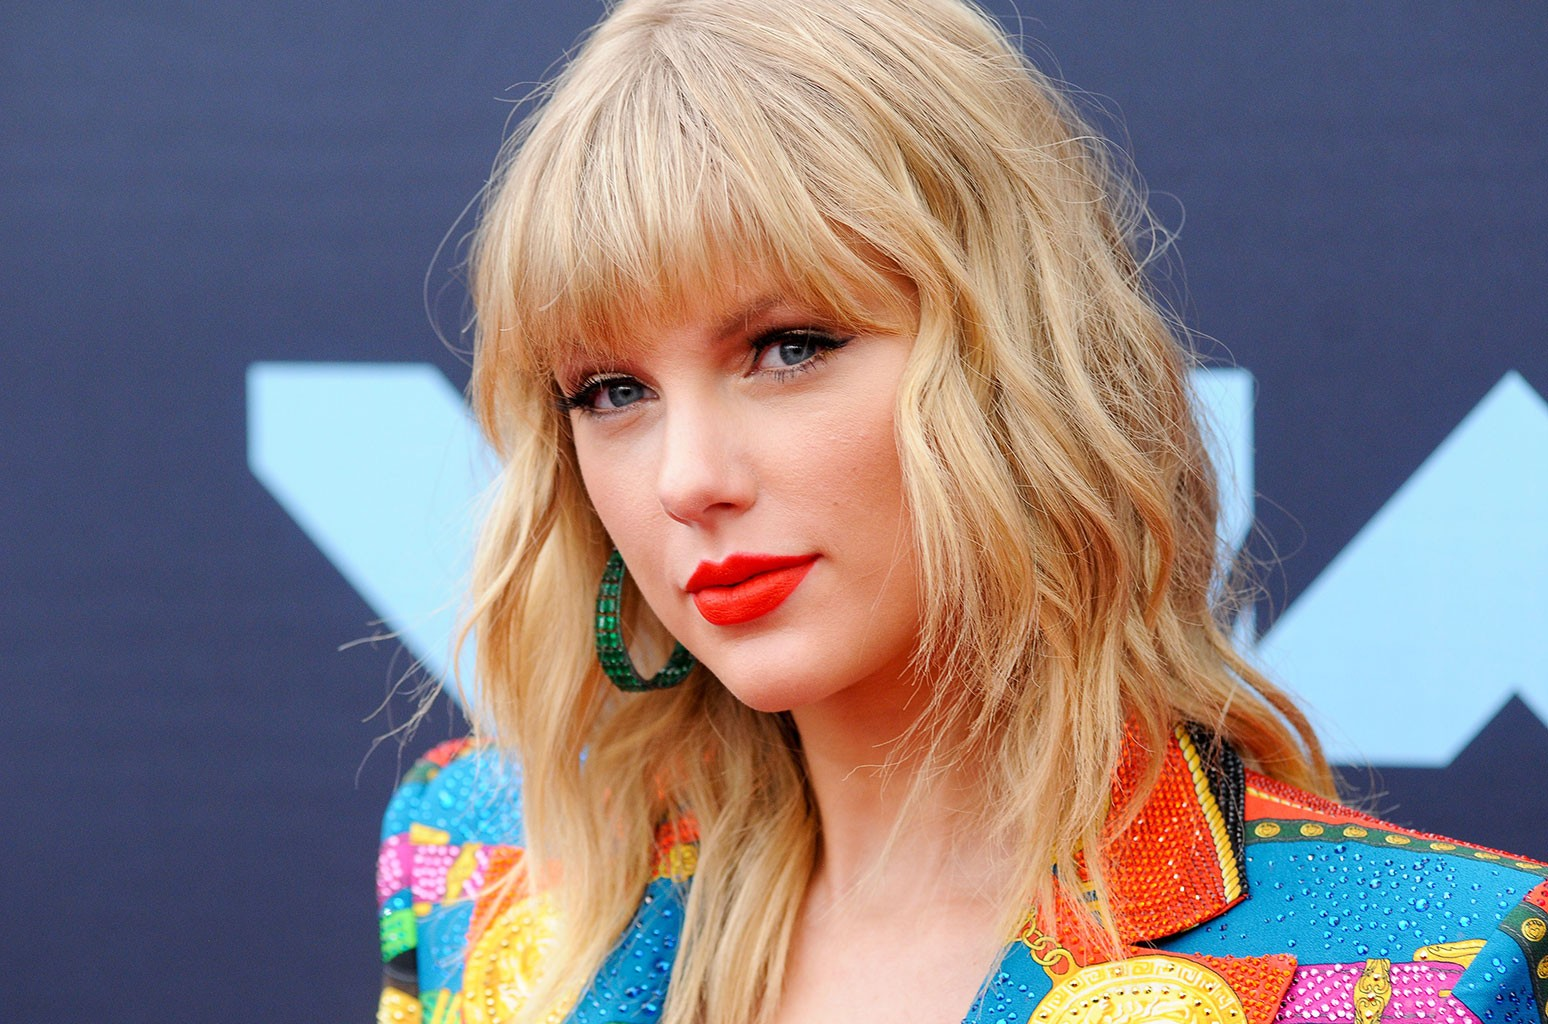 Taylor Swift S Lover Accounted For 27 Of All U S Album Sales In Its First Week Billboard